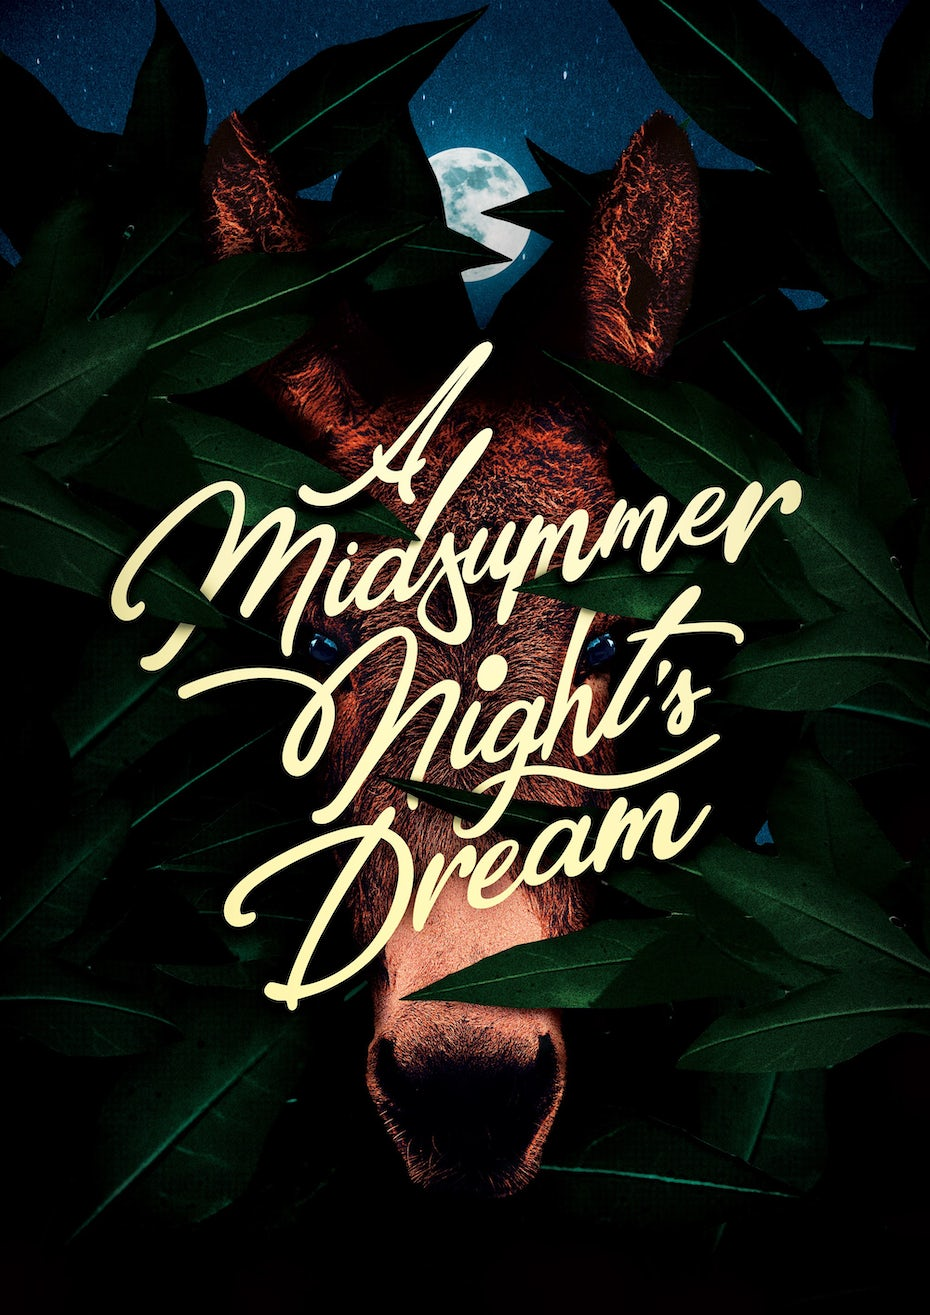 Color trends 2020 example: dark mode A Midsummer Night's Dream poster